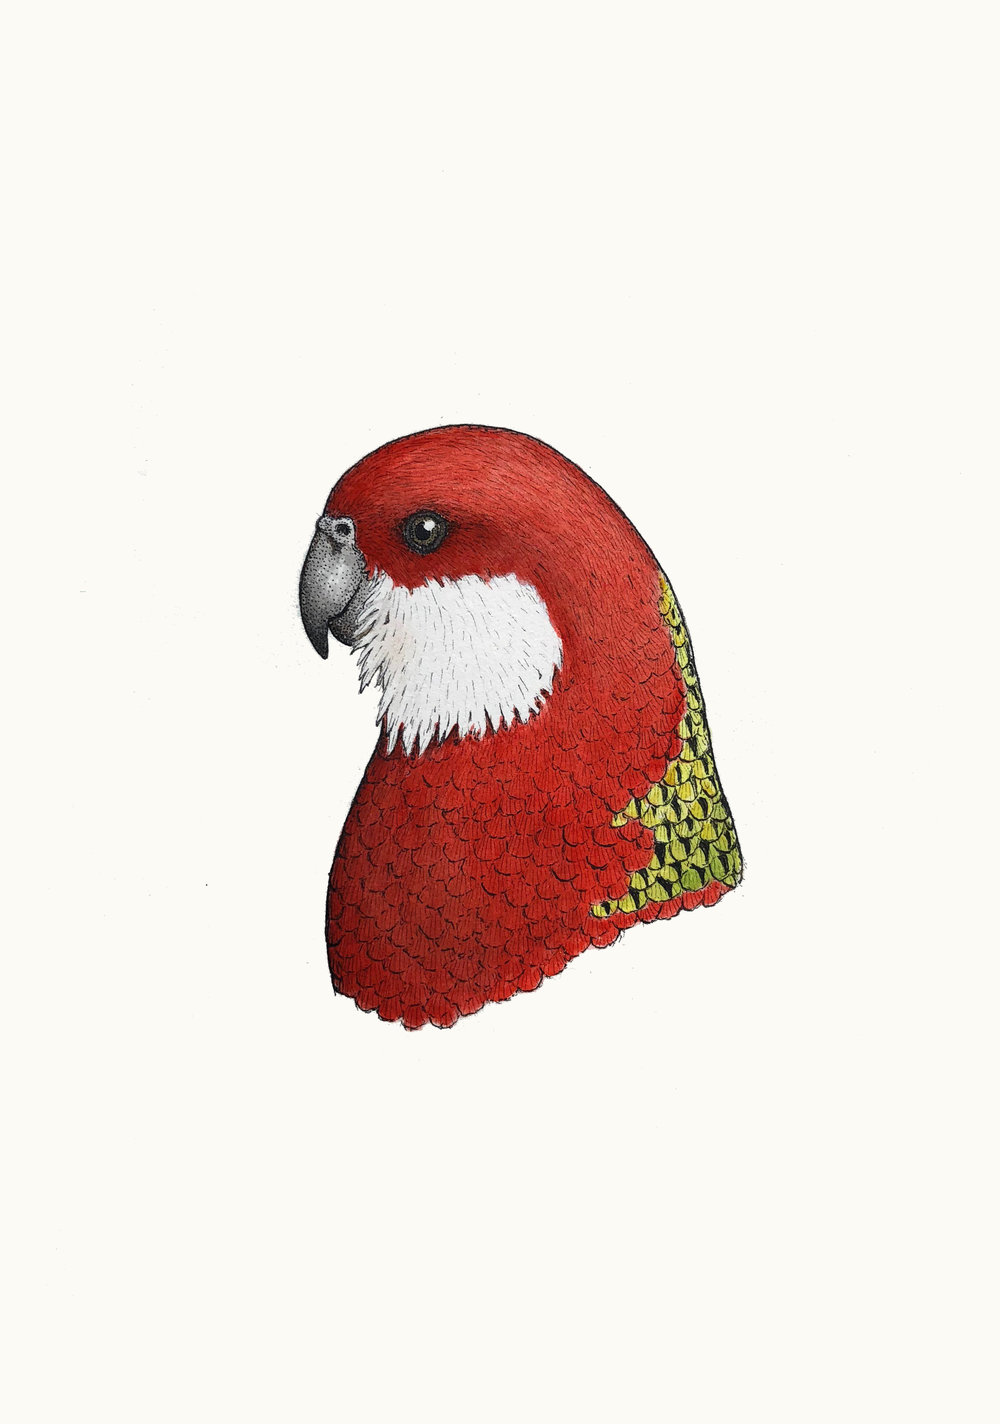 'Portrait of an Eastern Rosella'